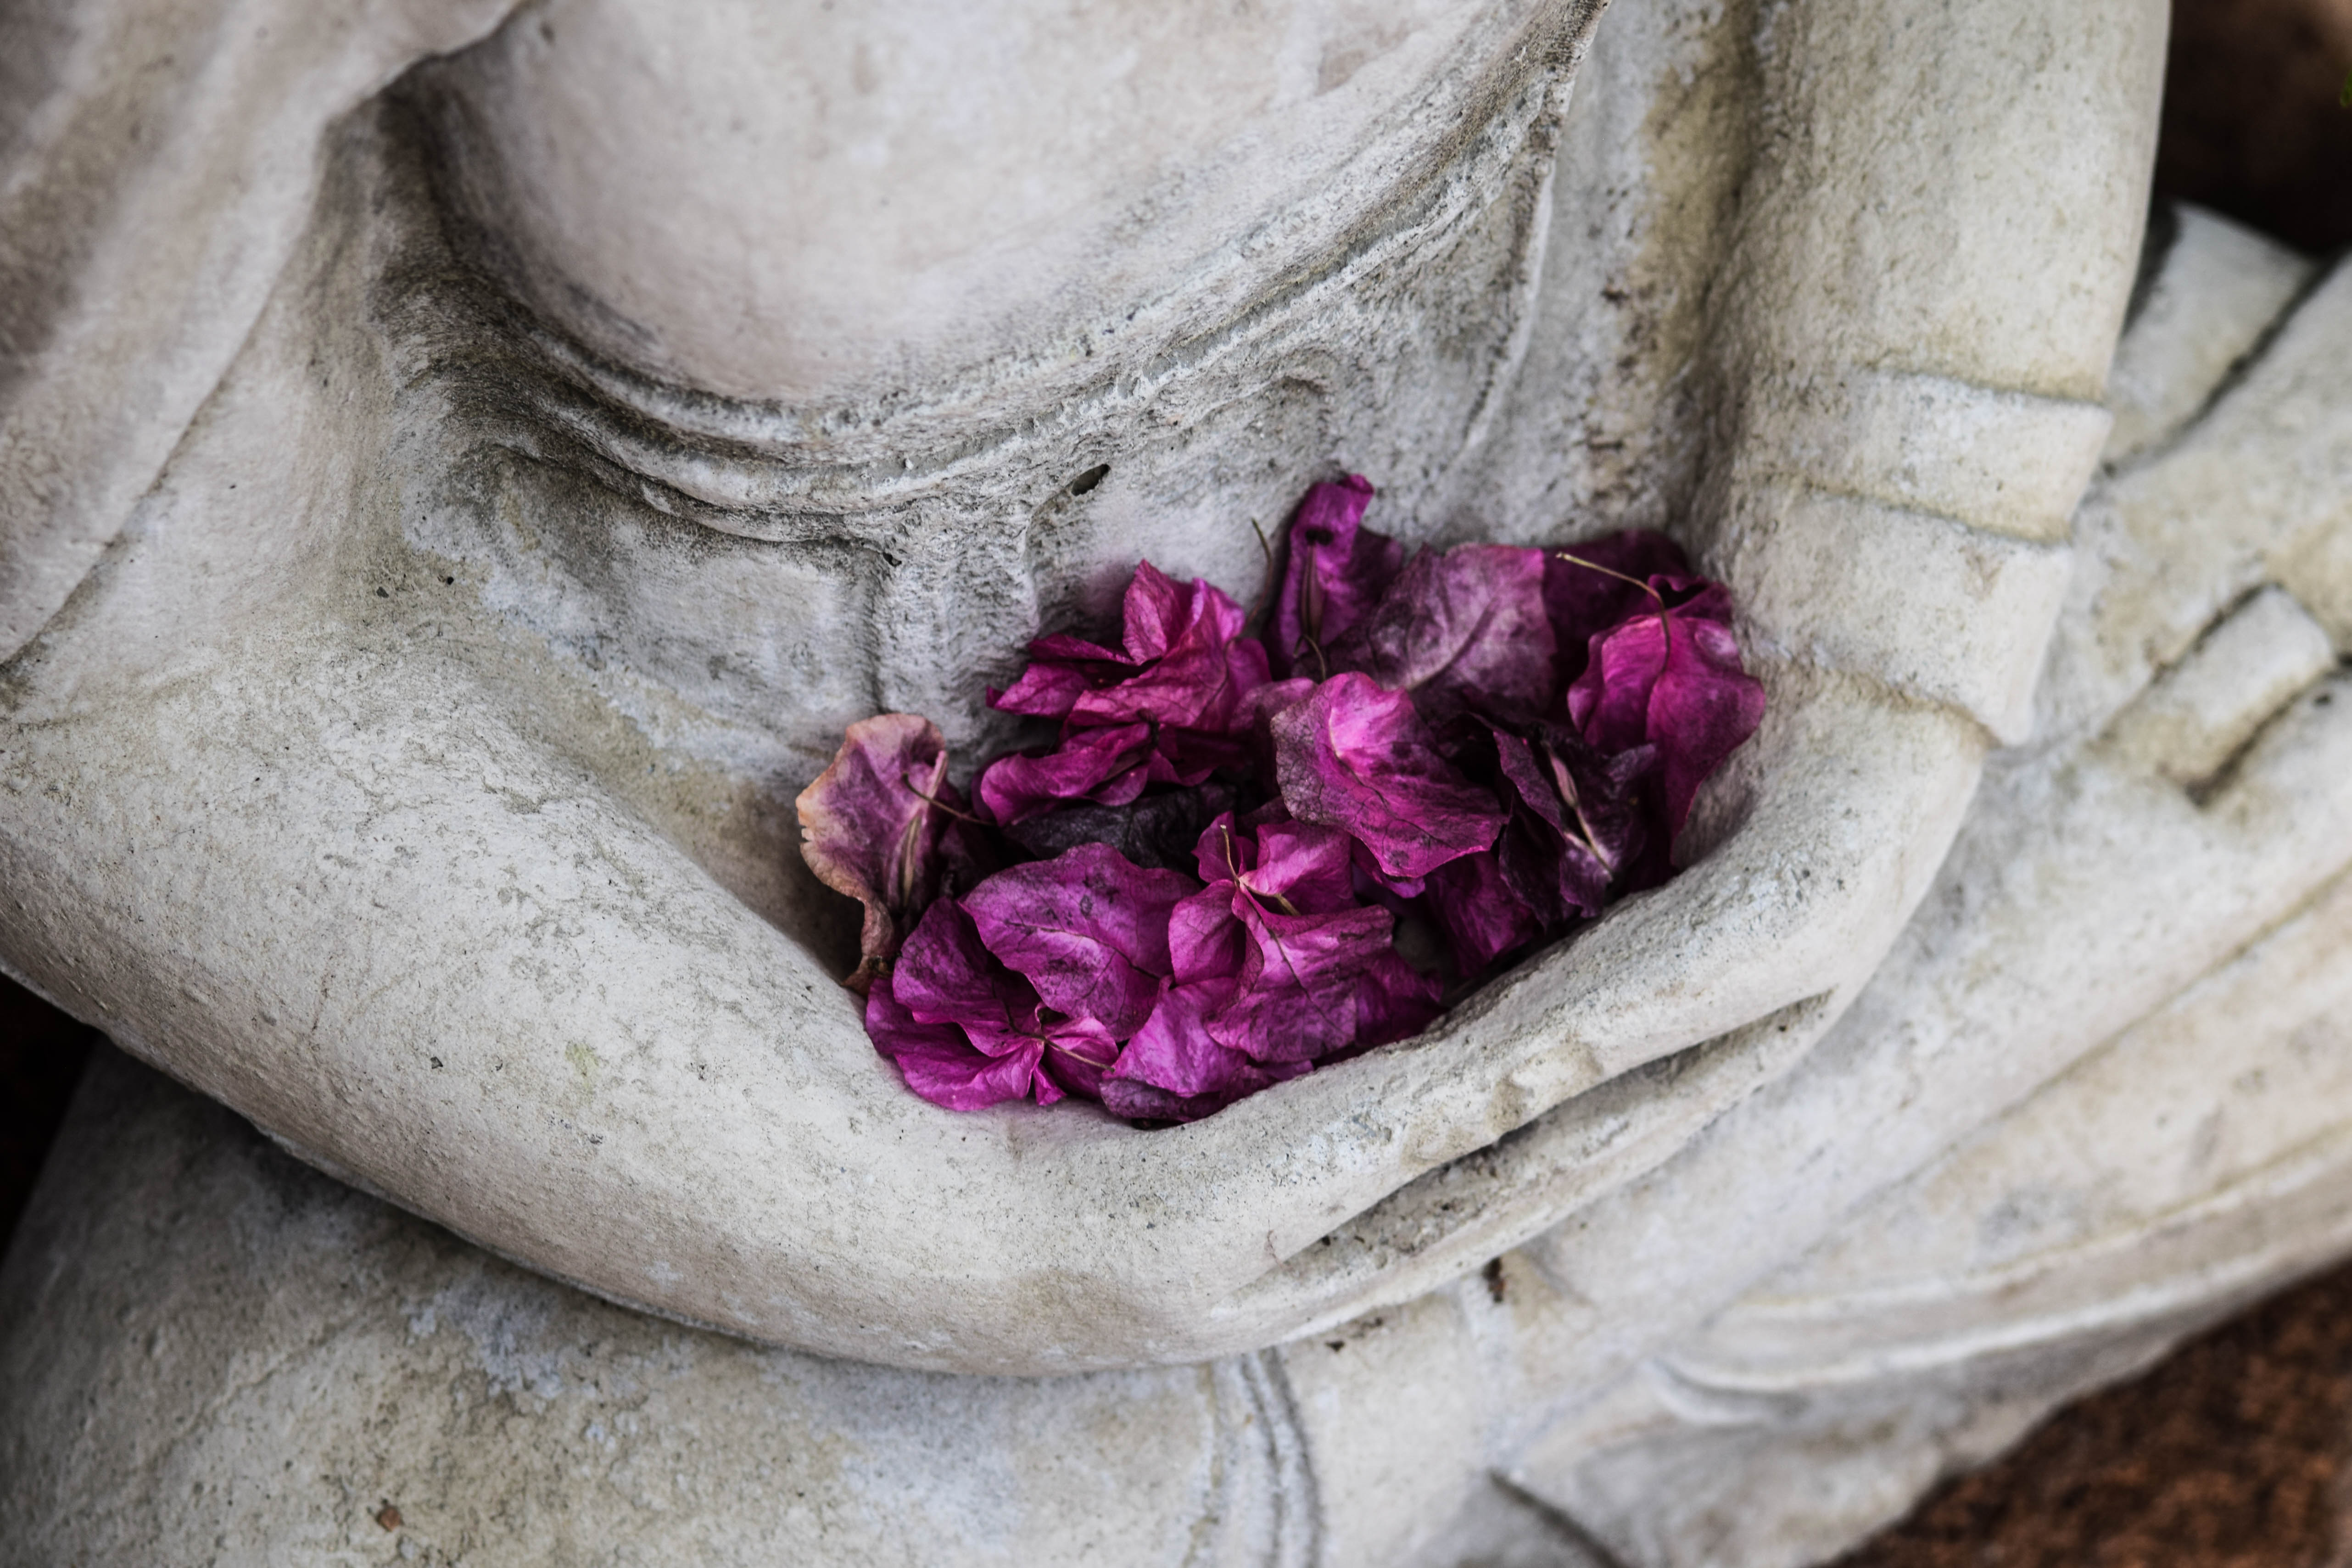 A pile of bright fuschia flower blossoms rest in the open hands and lap of a stone Buddha or Quan Yin statue